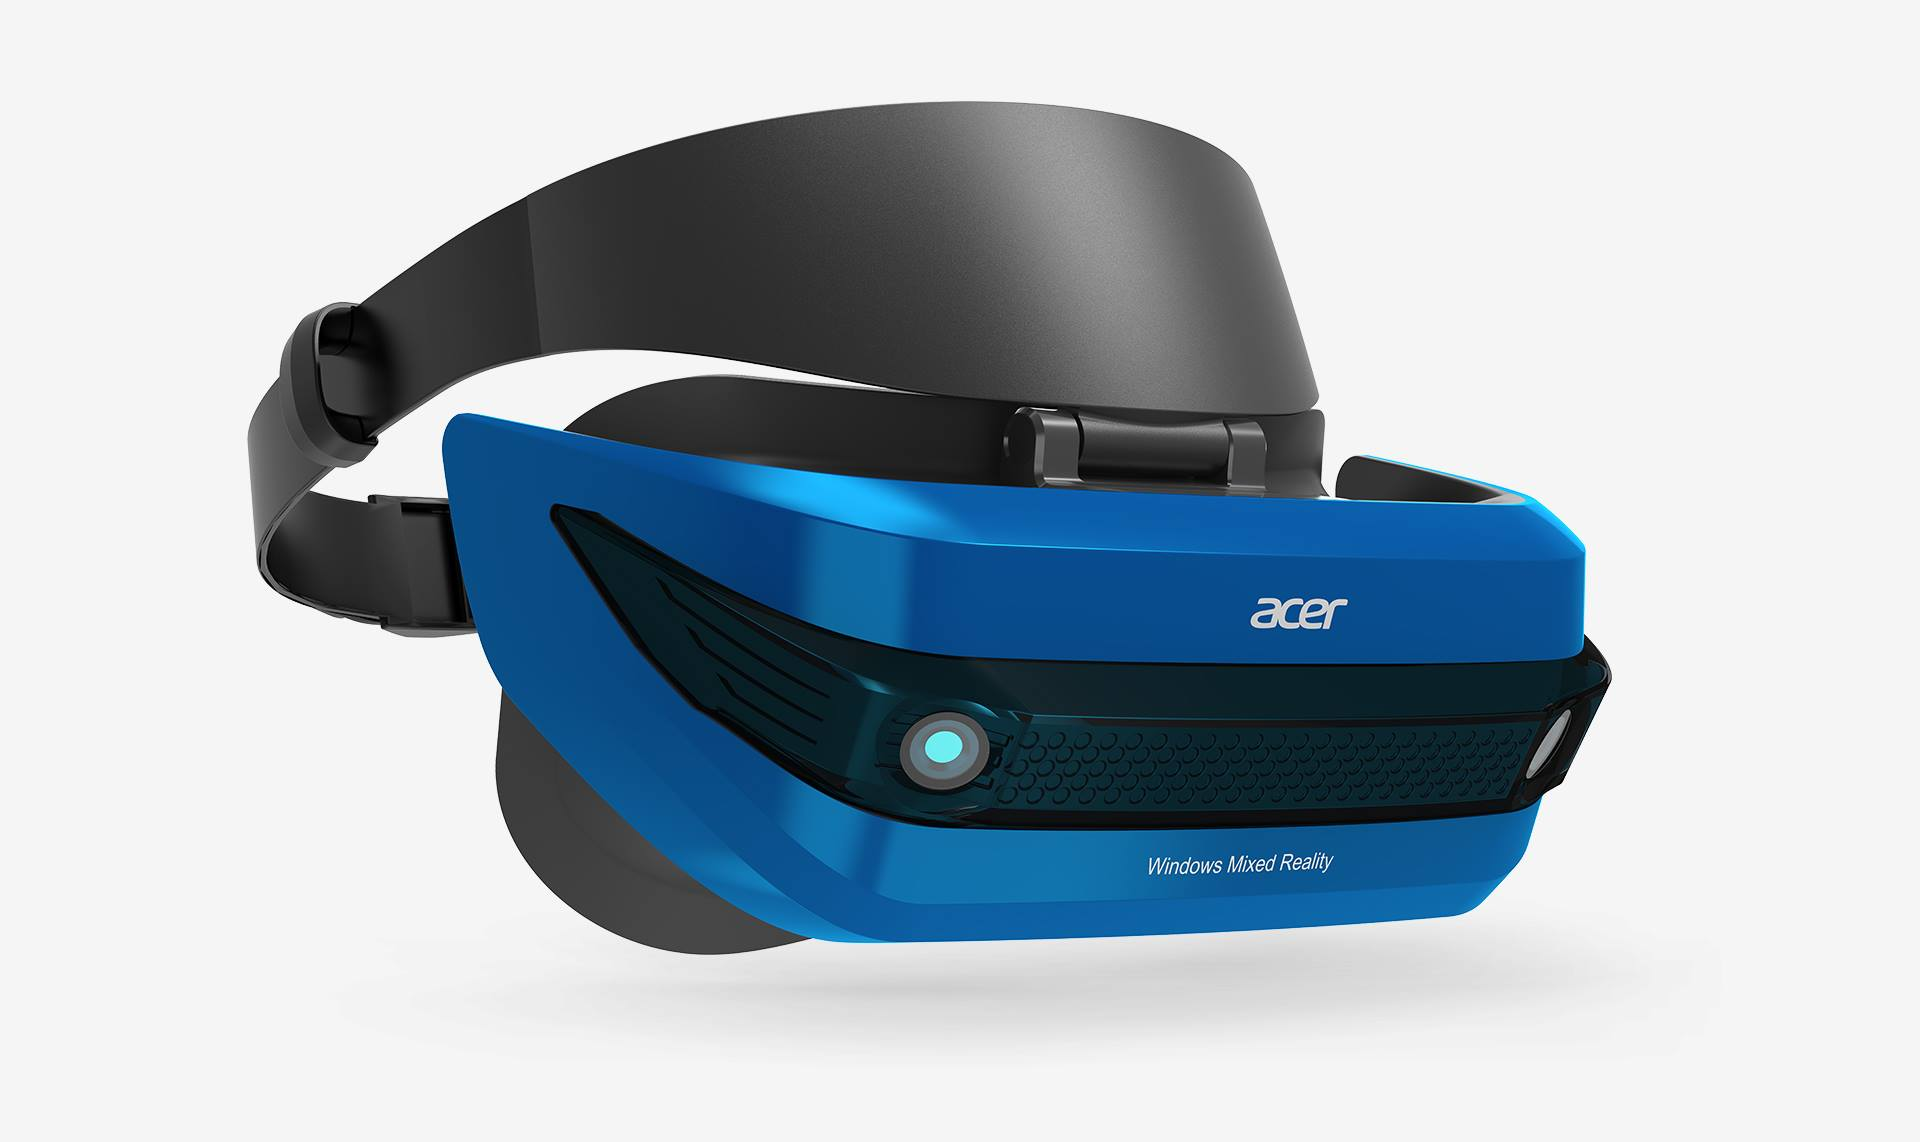 Acer Windows Mixed Reality HMD AH100 1 (6)